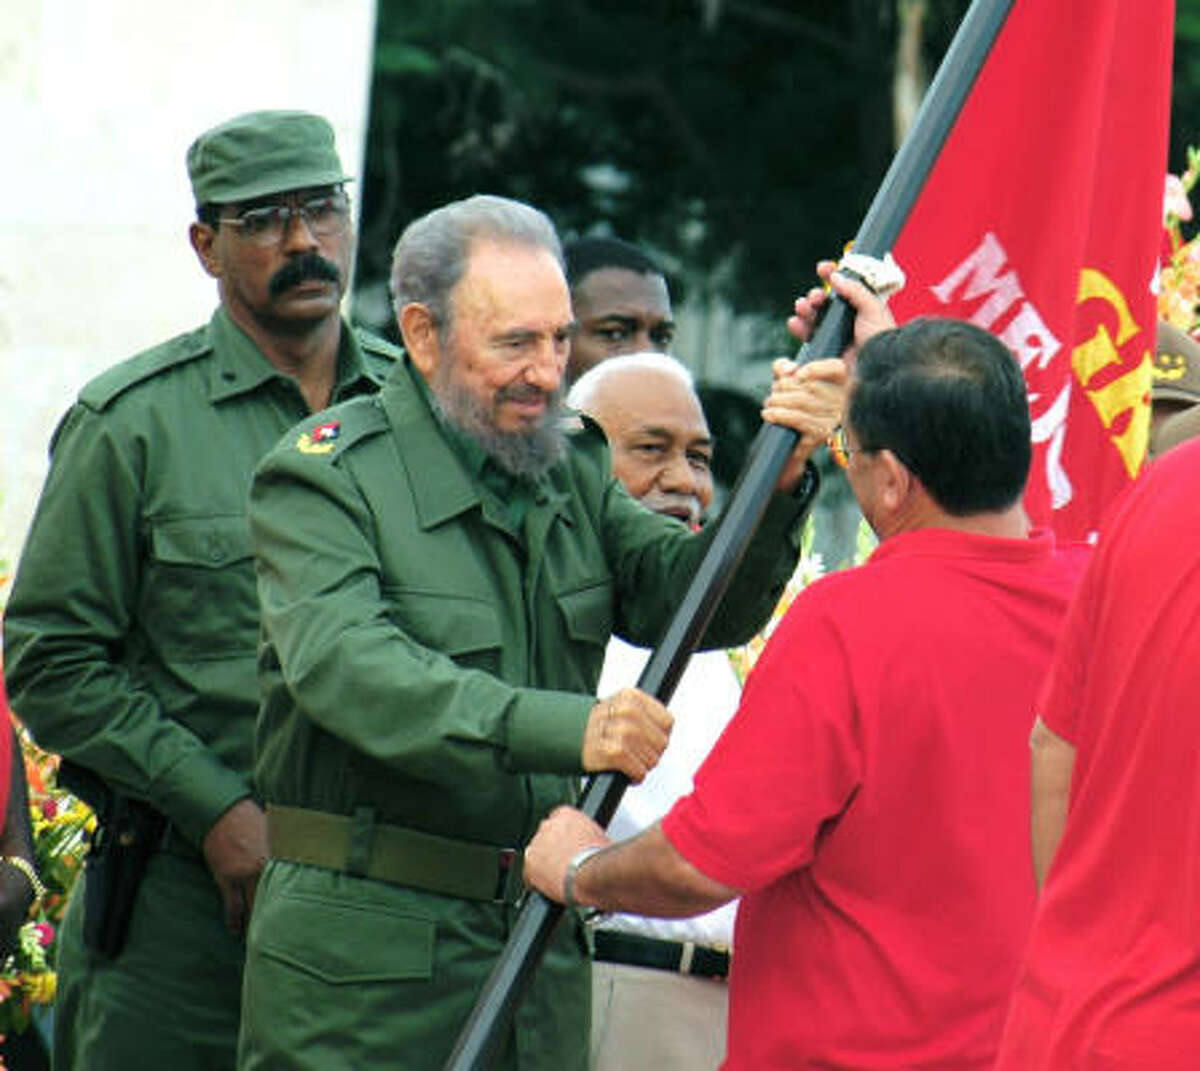 Fidel Castro presents a flag to the top Communist Party of Cuba official in Granma province.